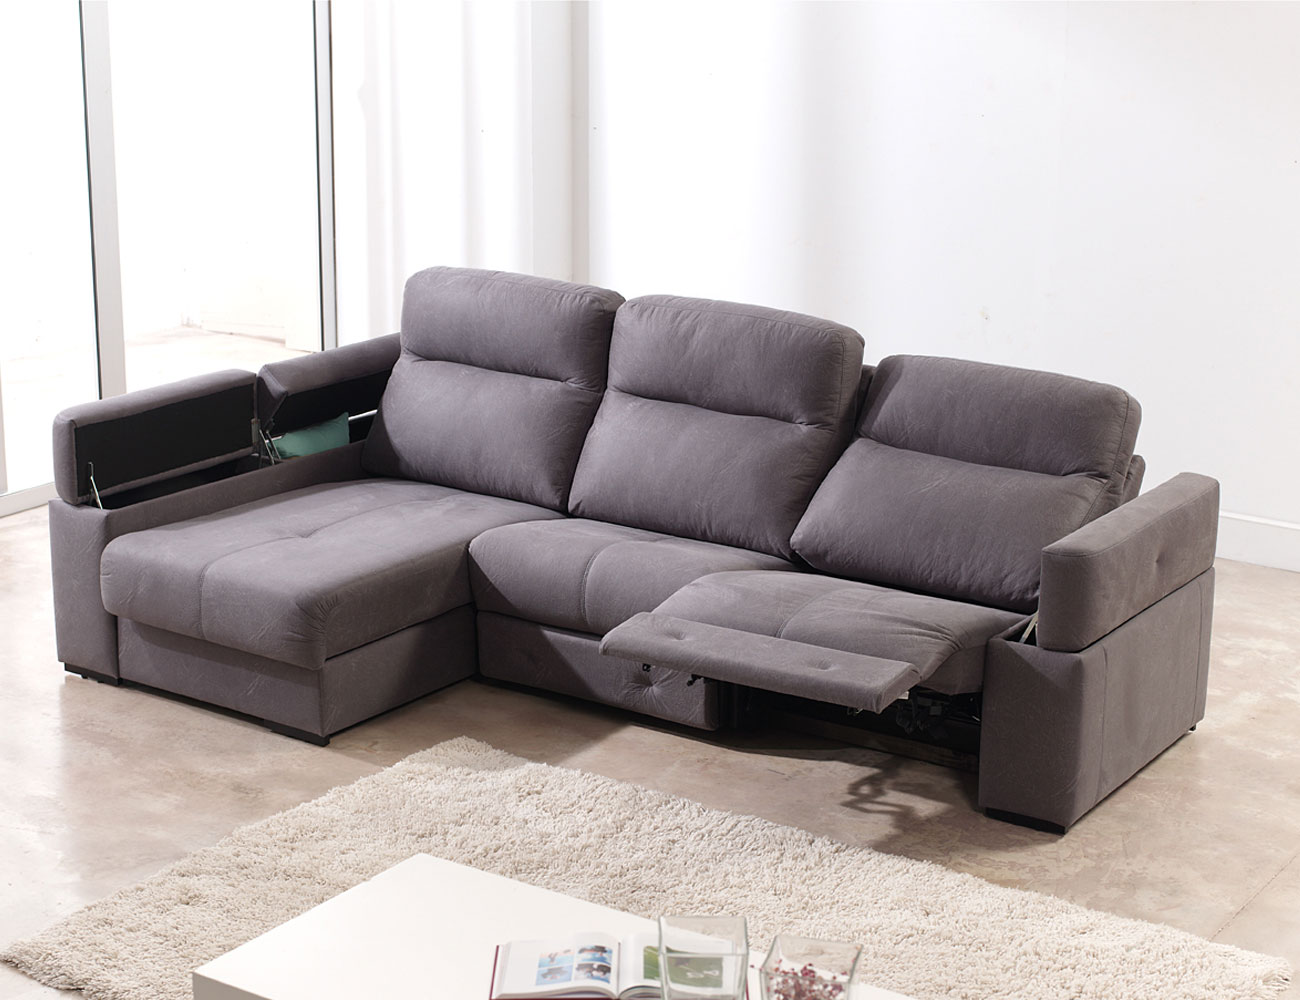 Sofa chaiselongue relax motor electrico 3 arcon 12